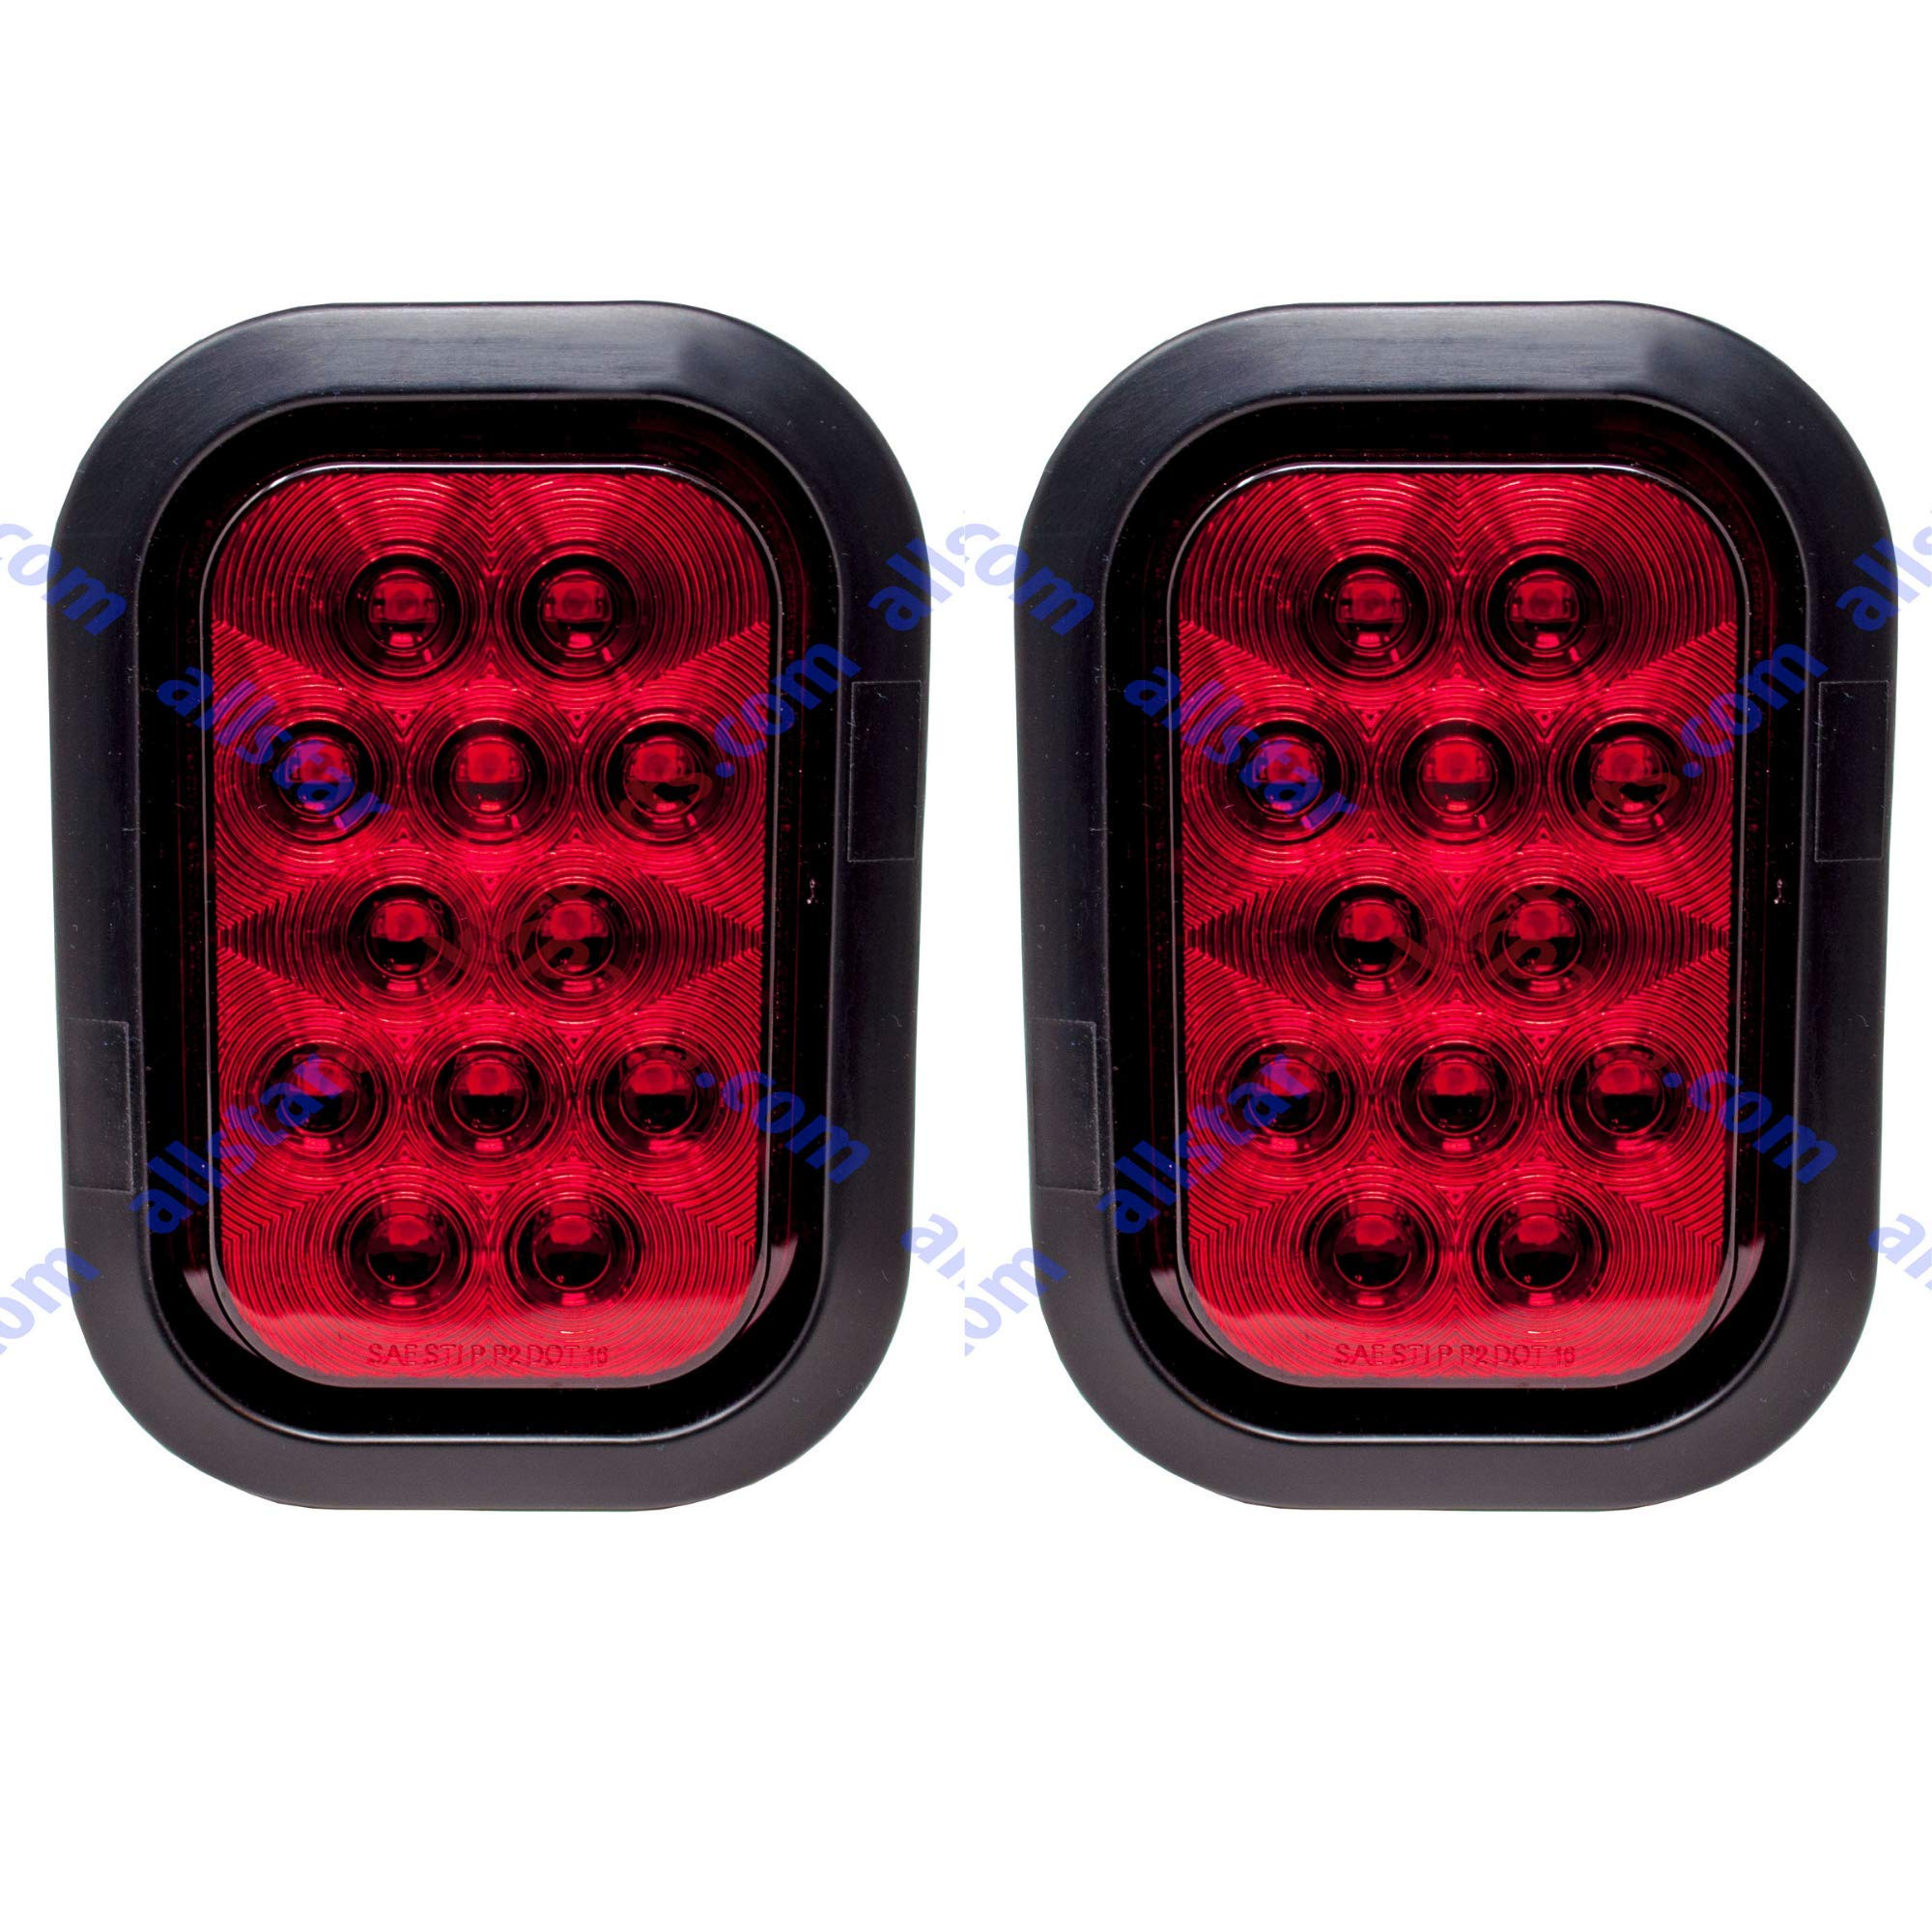 """[ALL STAR TRUCK PARTS] Qty 2-5x3"""" Red Rectangle 12 LED Stop/Turn/Tail Truck Light Grommet & 3 Wire Pigtail Plug Kit"""